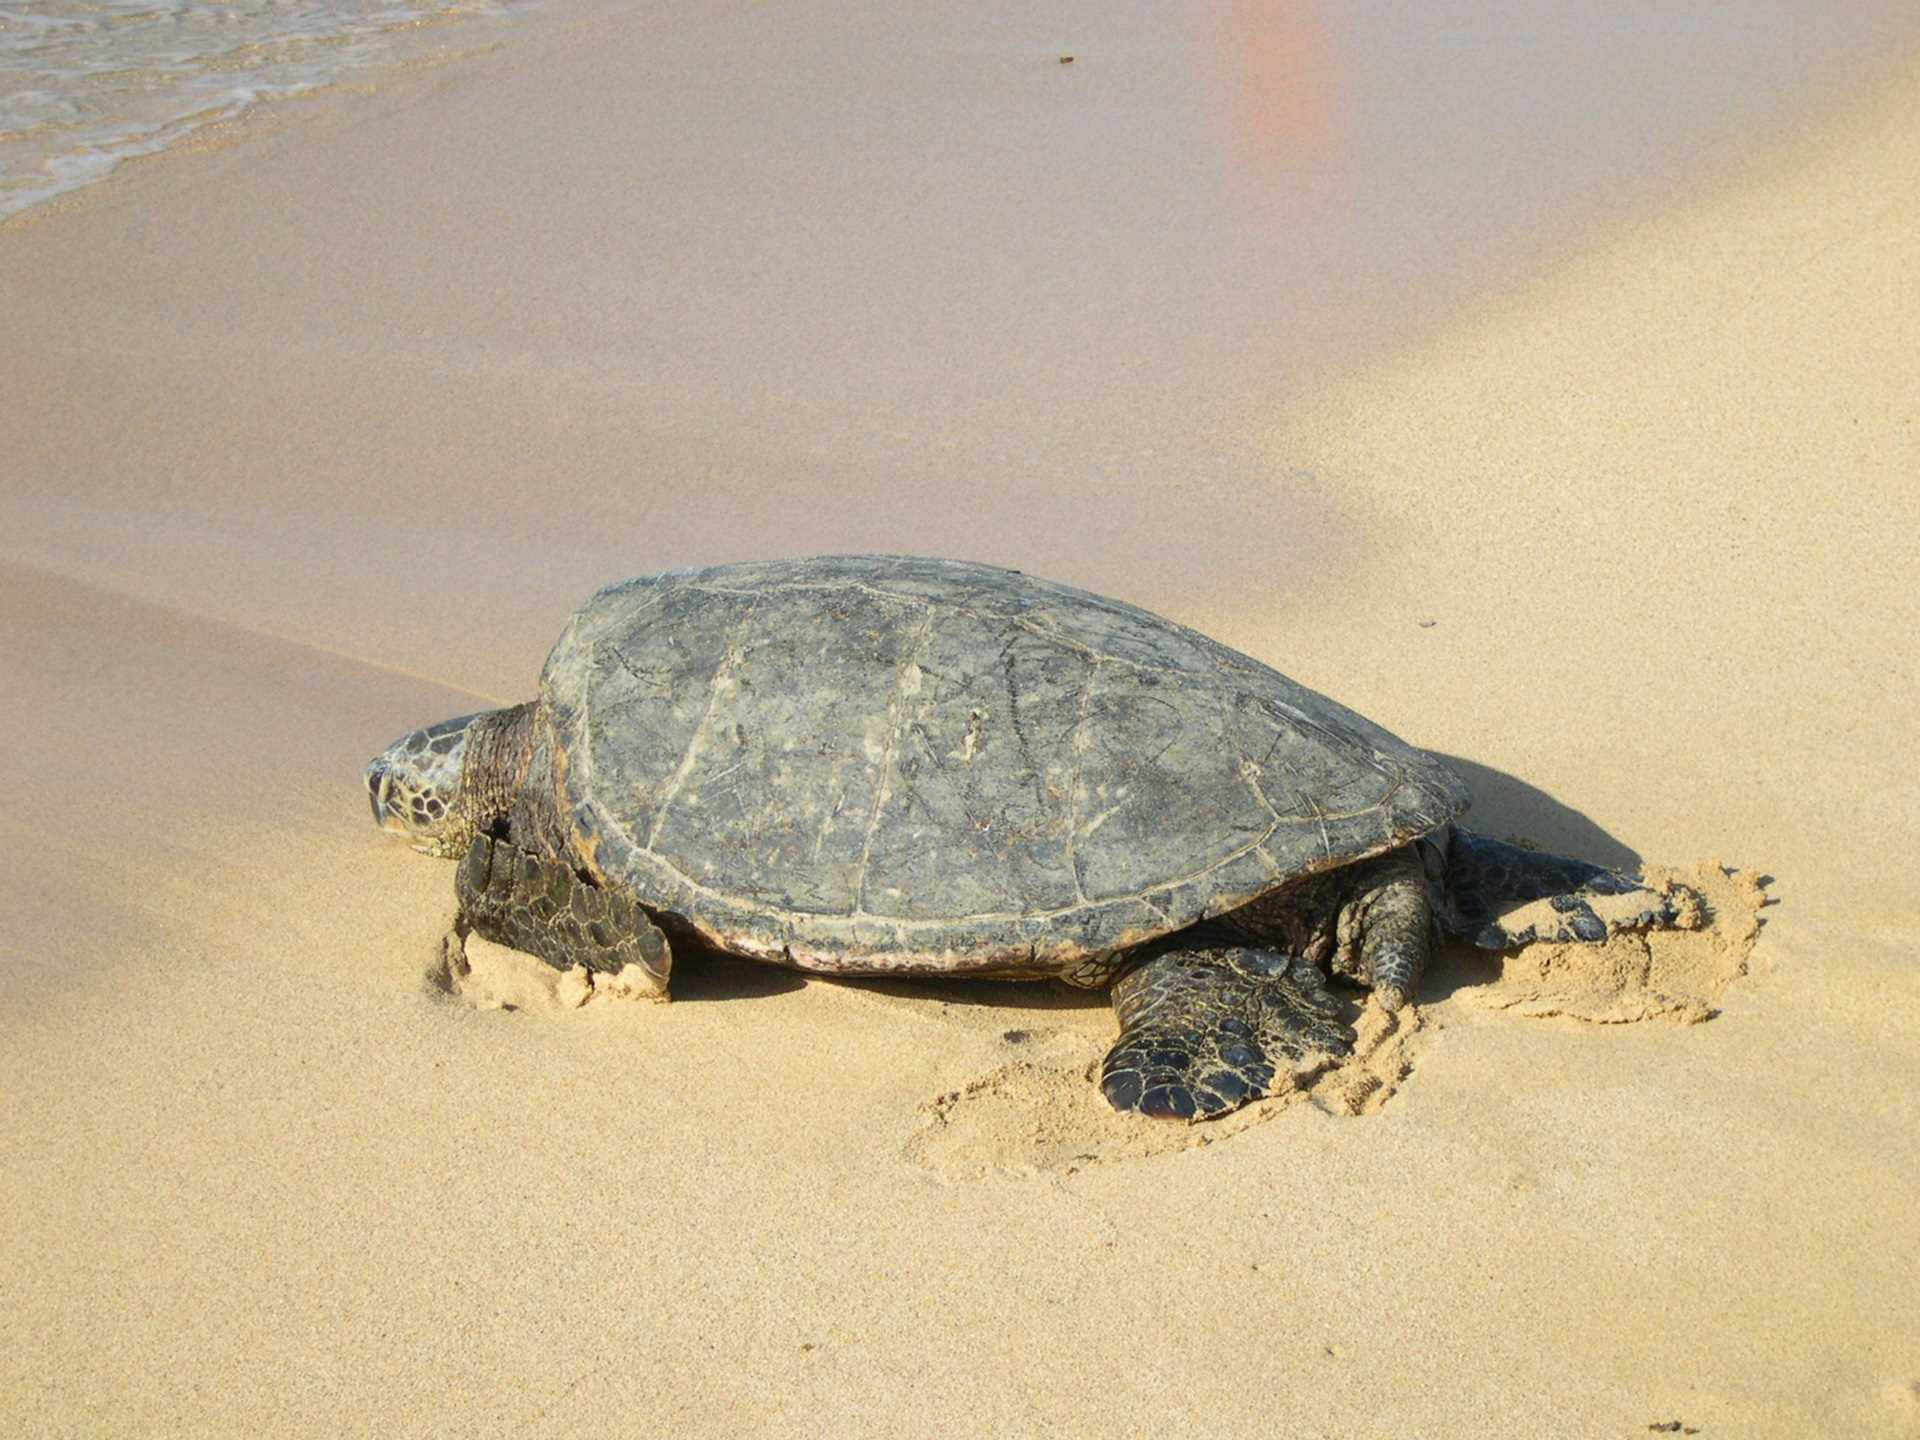 A frequent visitor to our shores is the green sea turtle.  Y